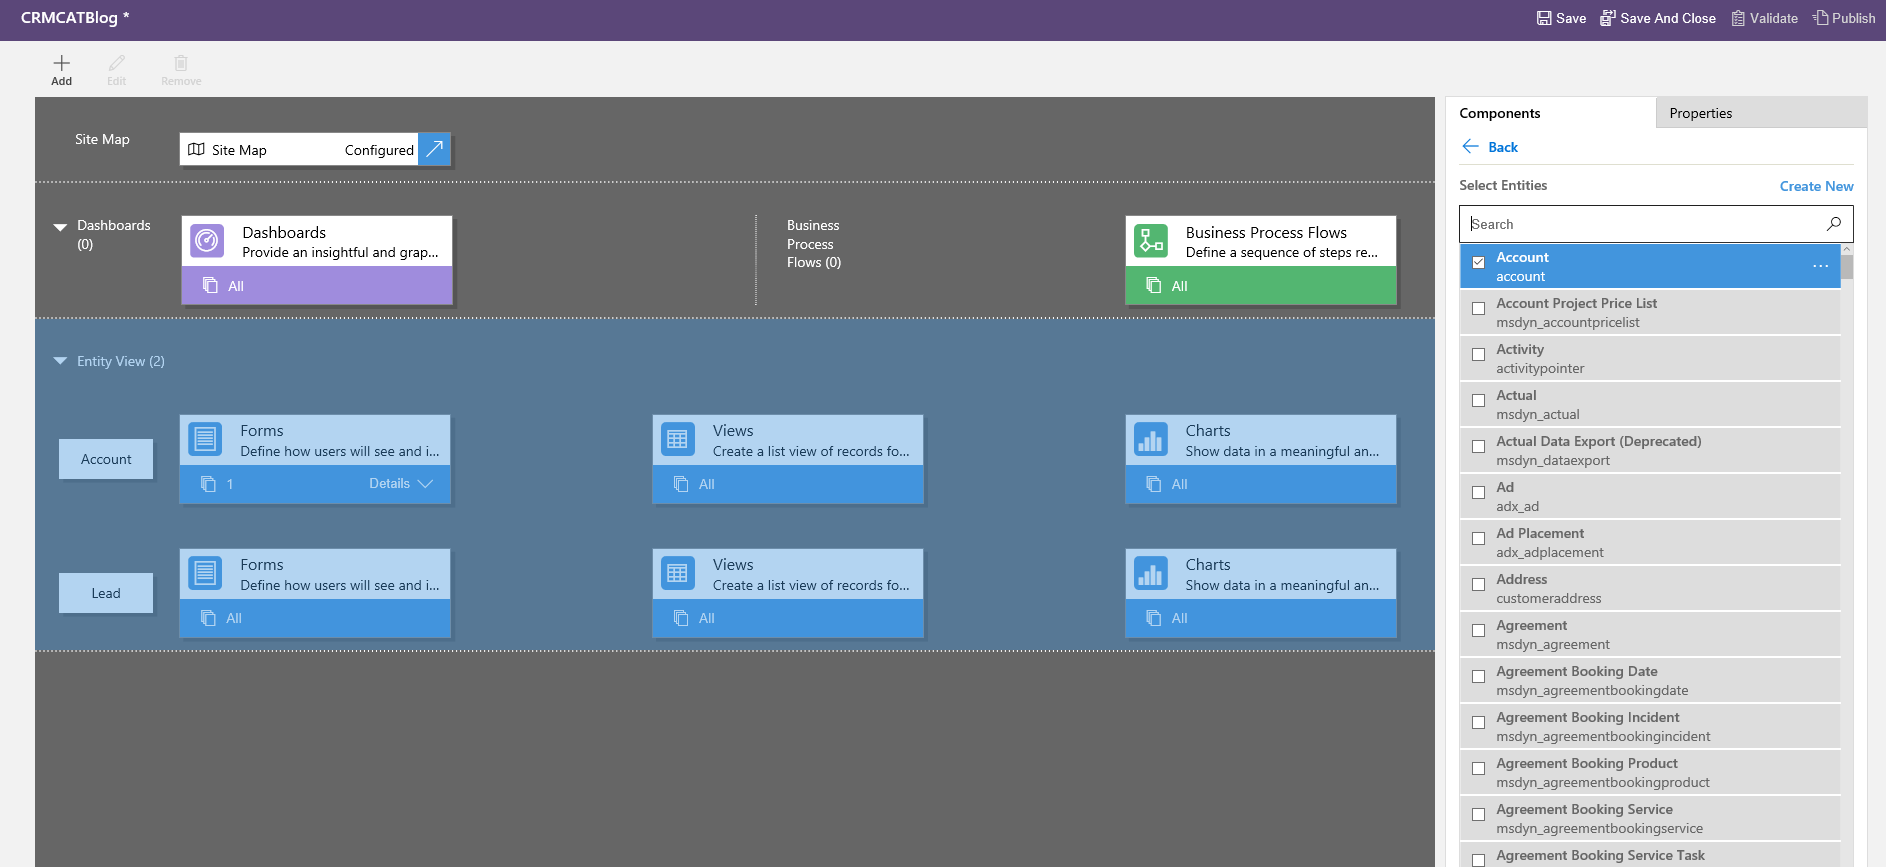 What's new in Microsoft Dynamics 365 and How to get started